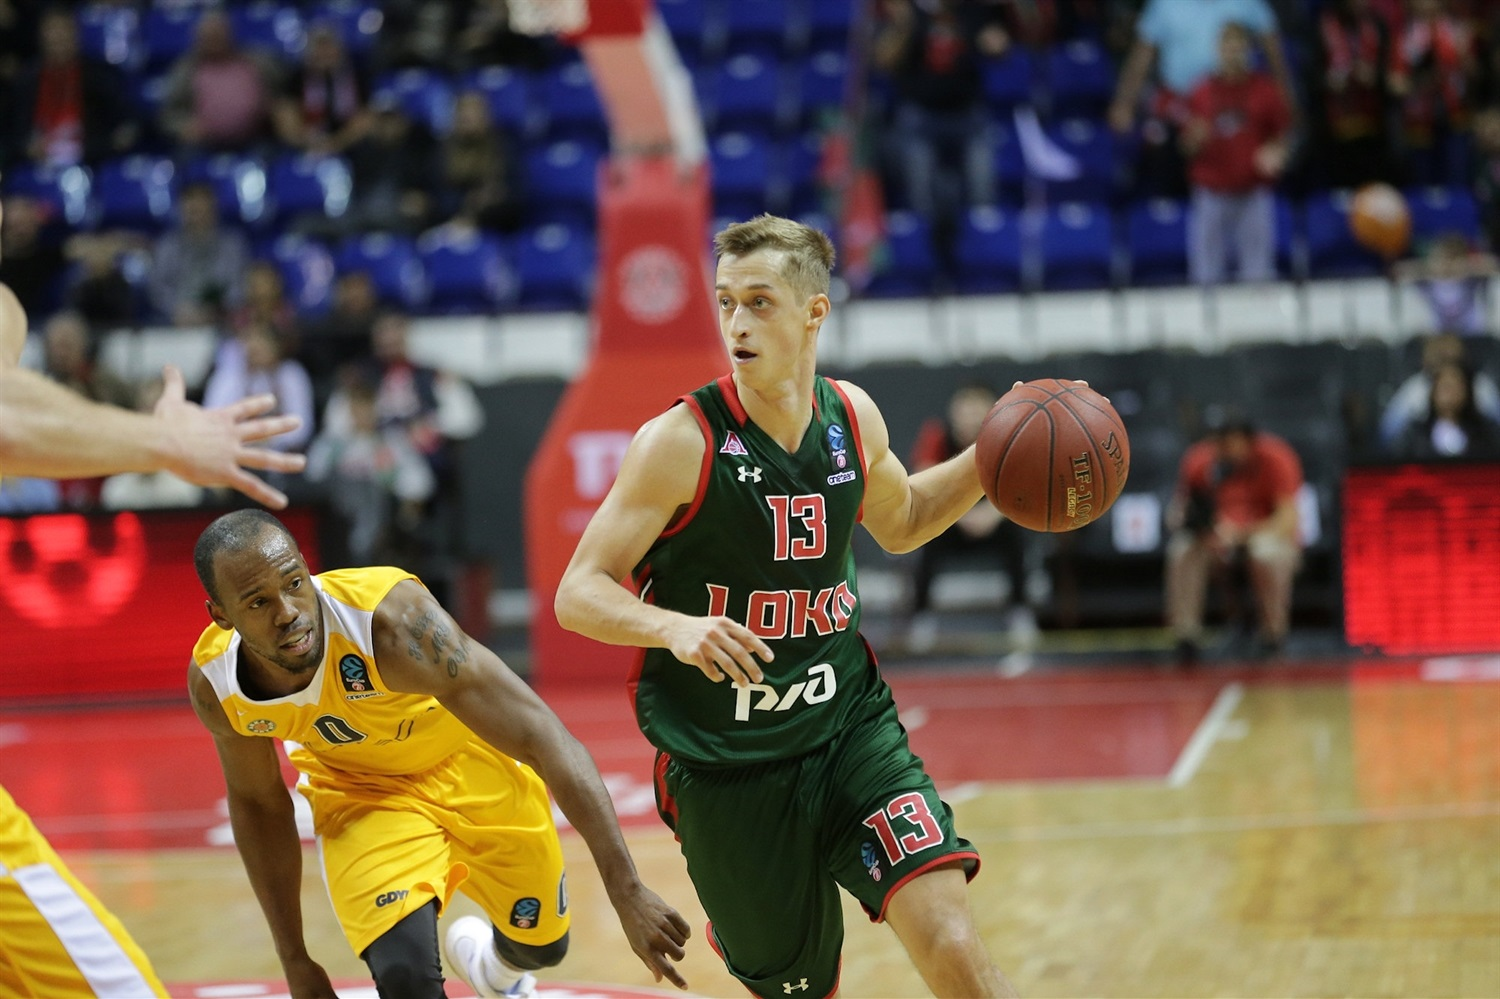 Dmitry Khvostov - Lokomotiv Kuban Krasnodar (photo Lokomotiv) - EC18